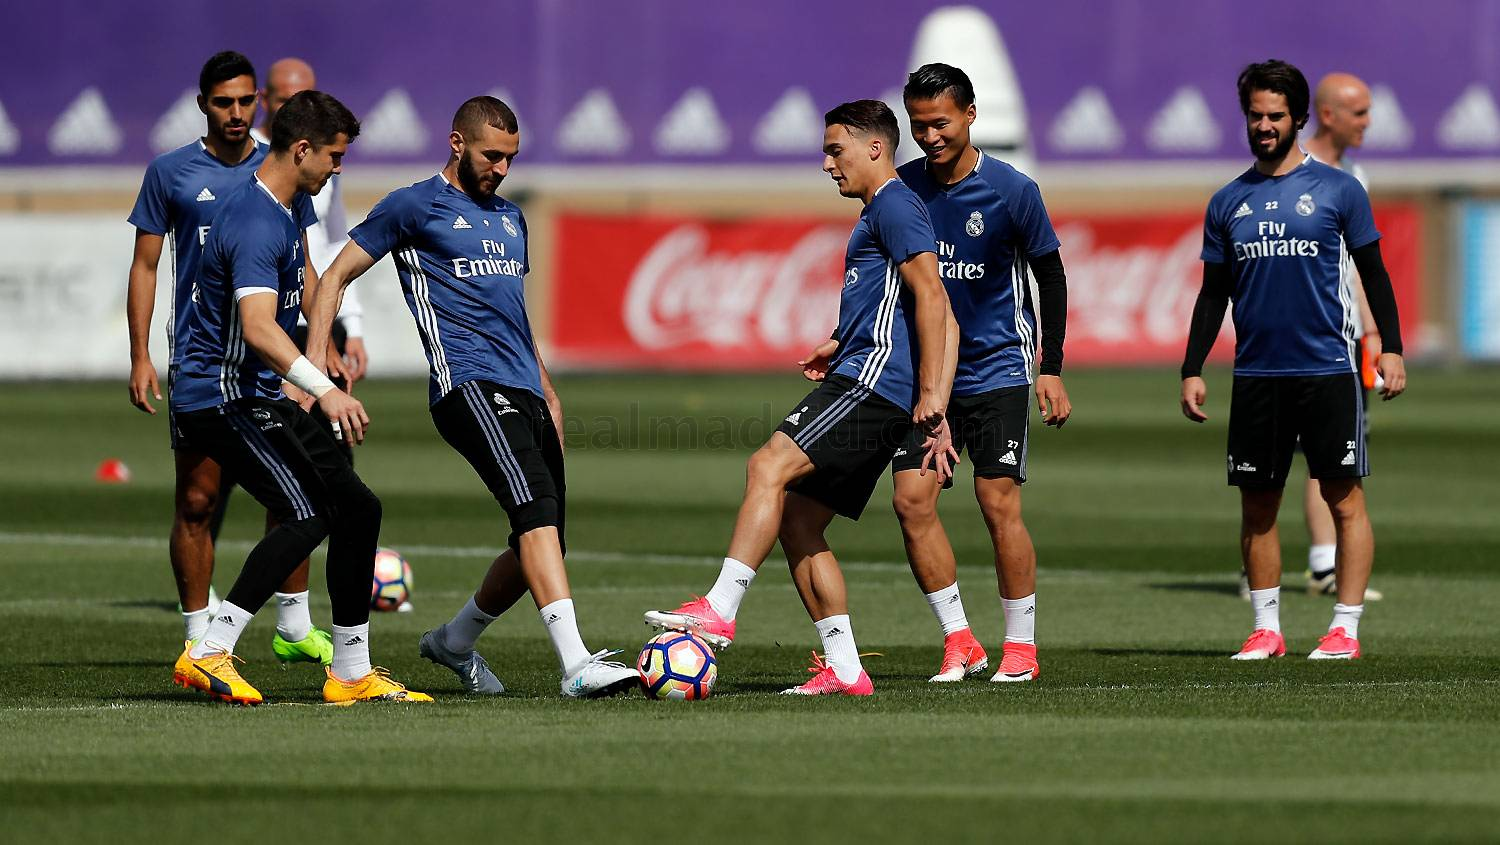 Real Madrid - Entrenamiento del Real Madrid - 15-05-2017